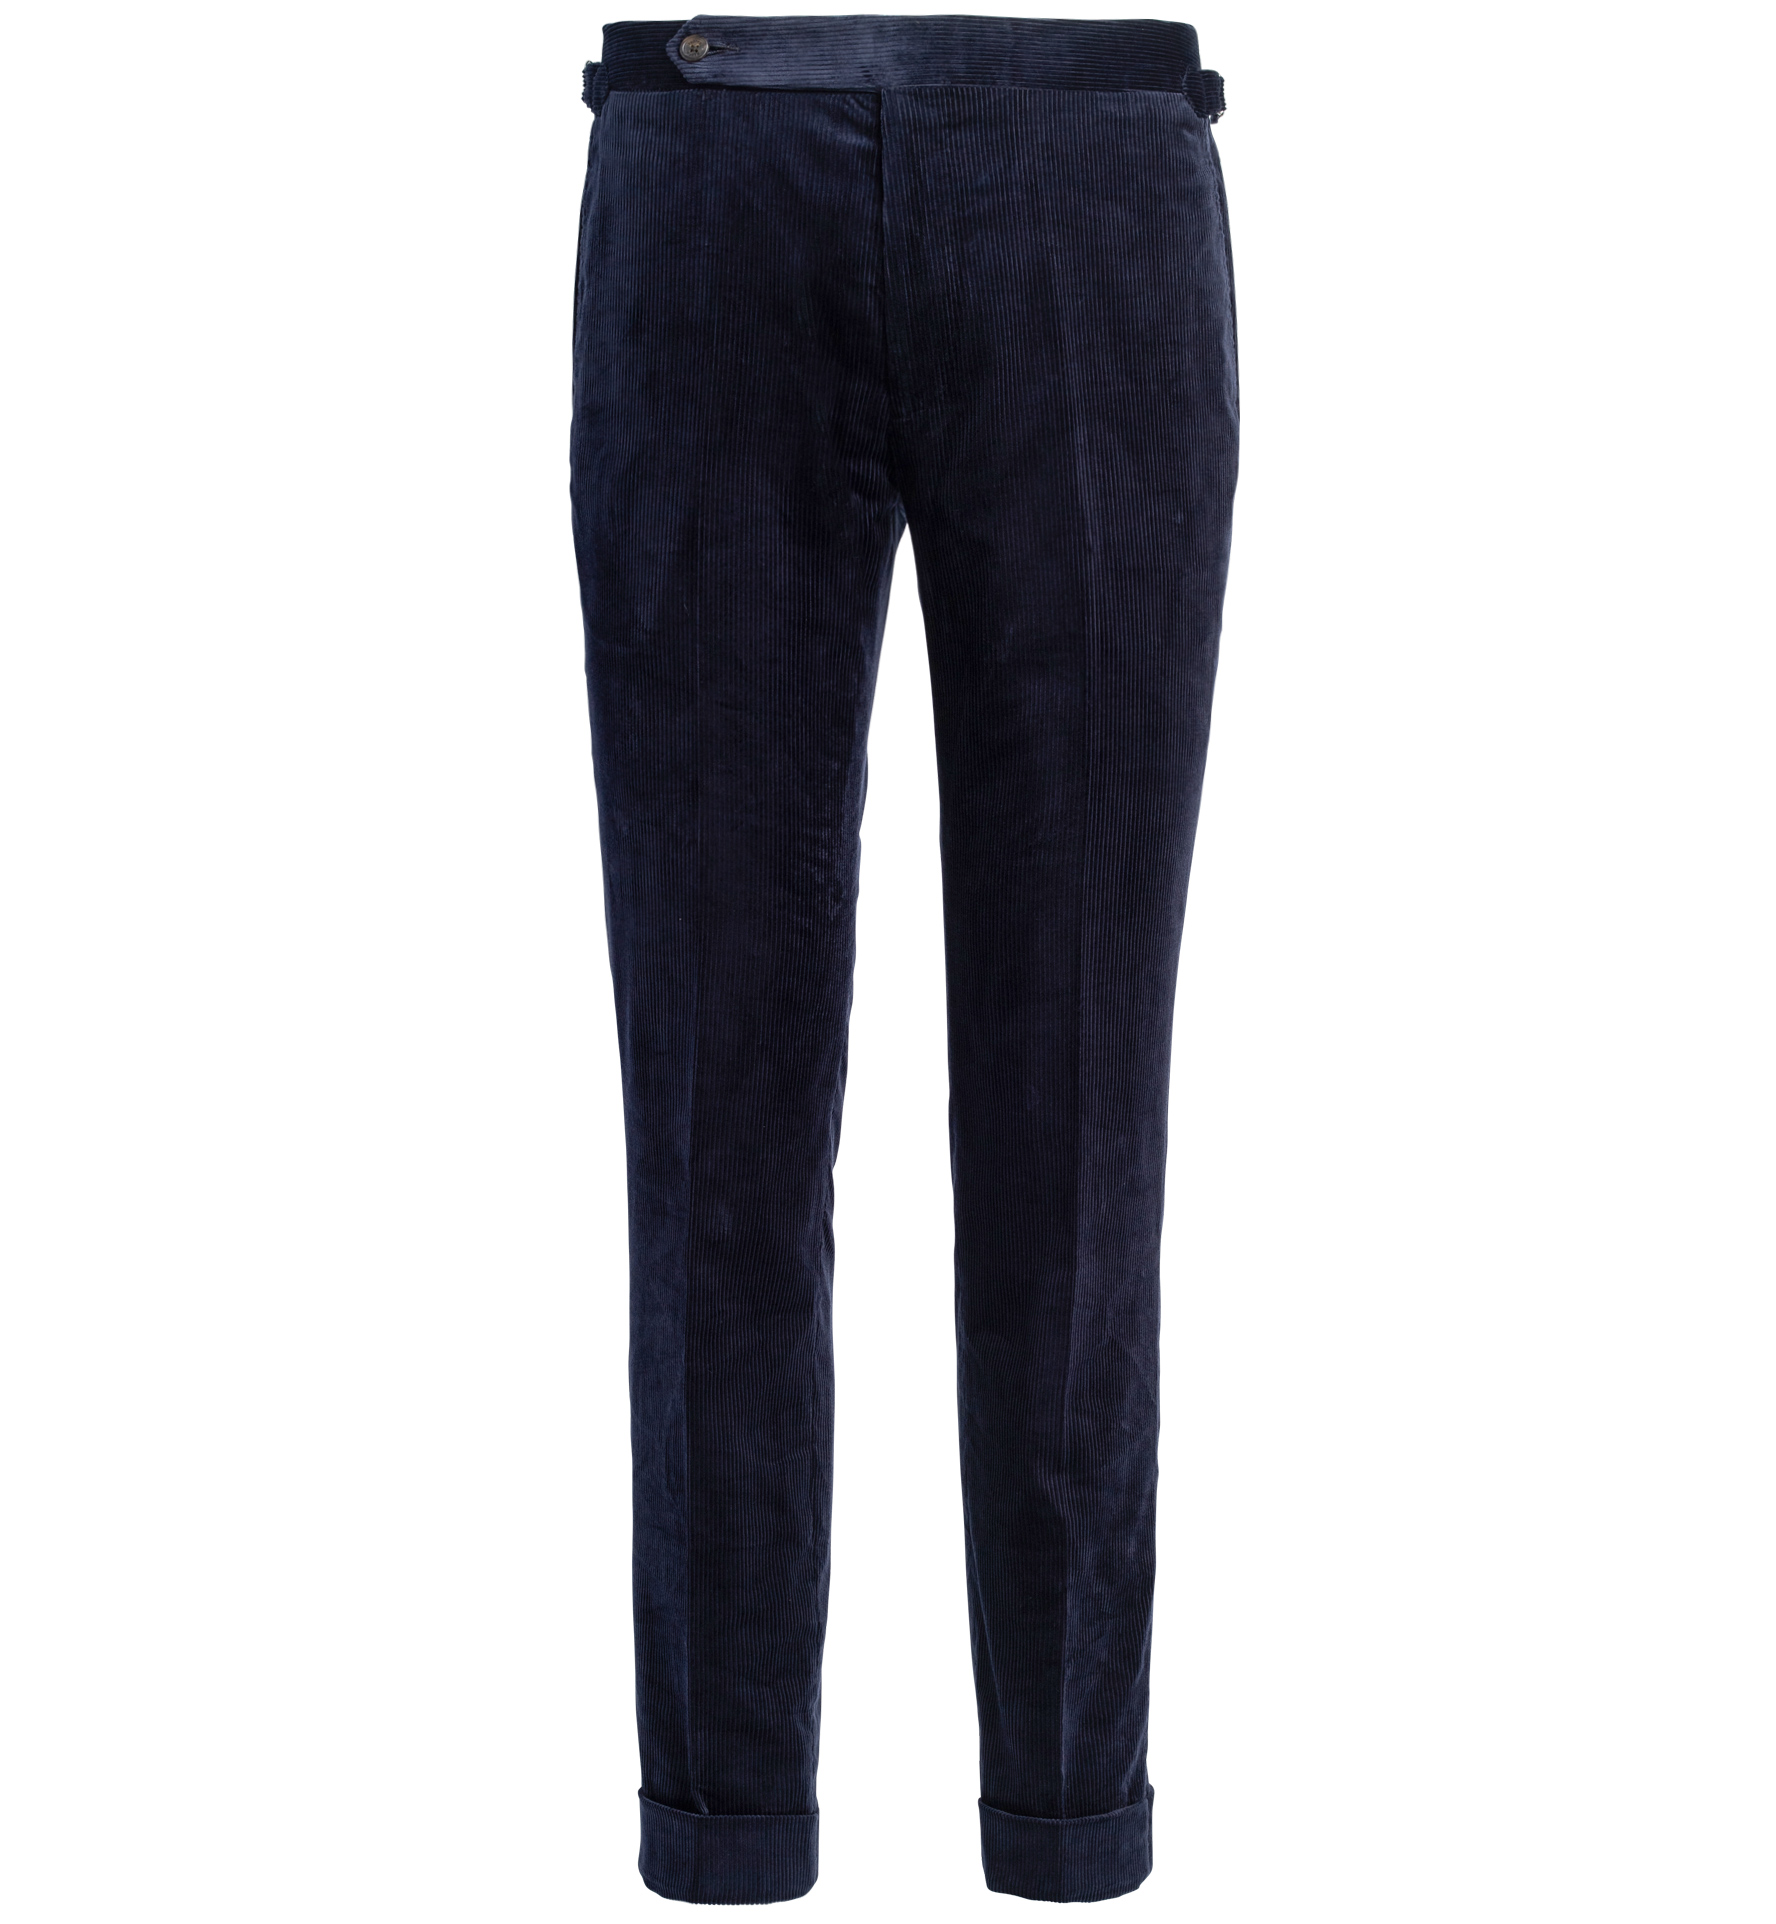 Zoom Image of Allen Navy Lightweight Supima Corduroy Trouser